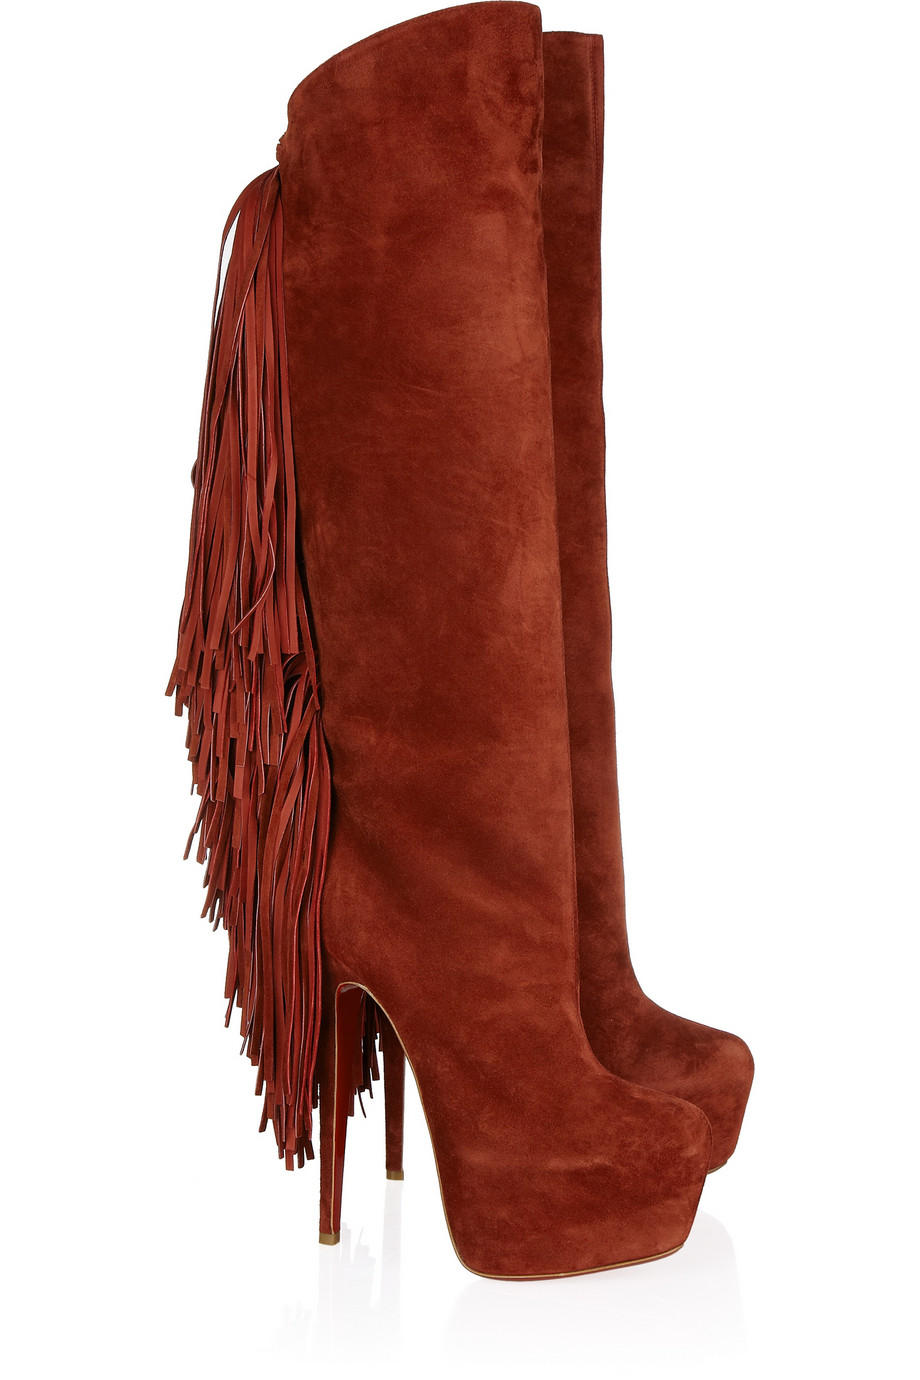 68931c634d27 Lyst - Christian Louboutin Interlopa 165 Fringed Suede Knee Boots in Red